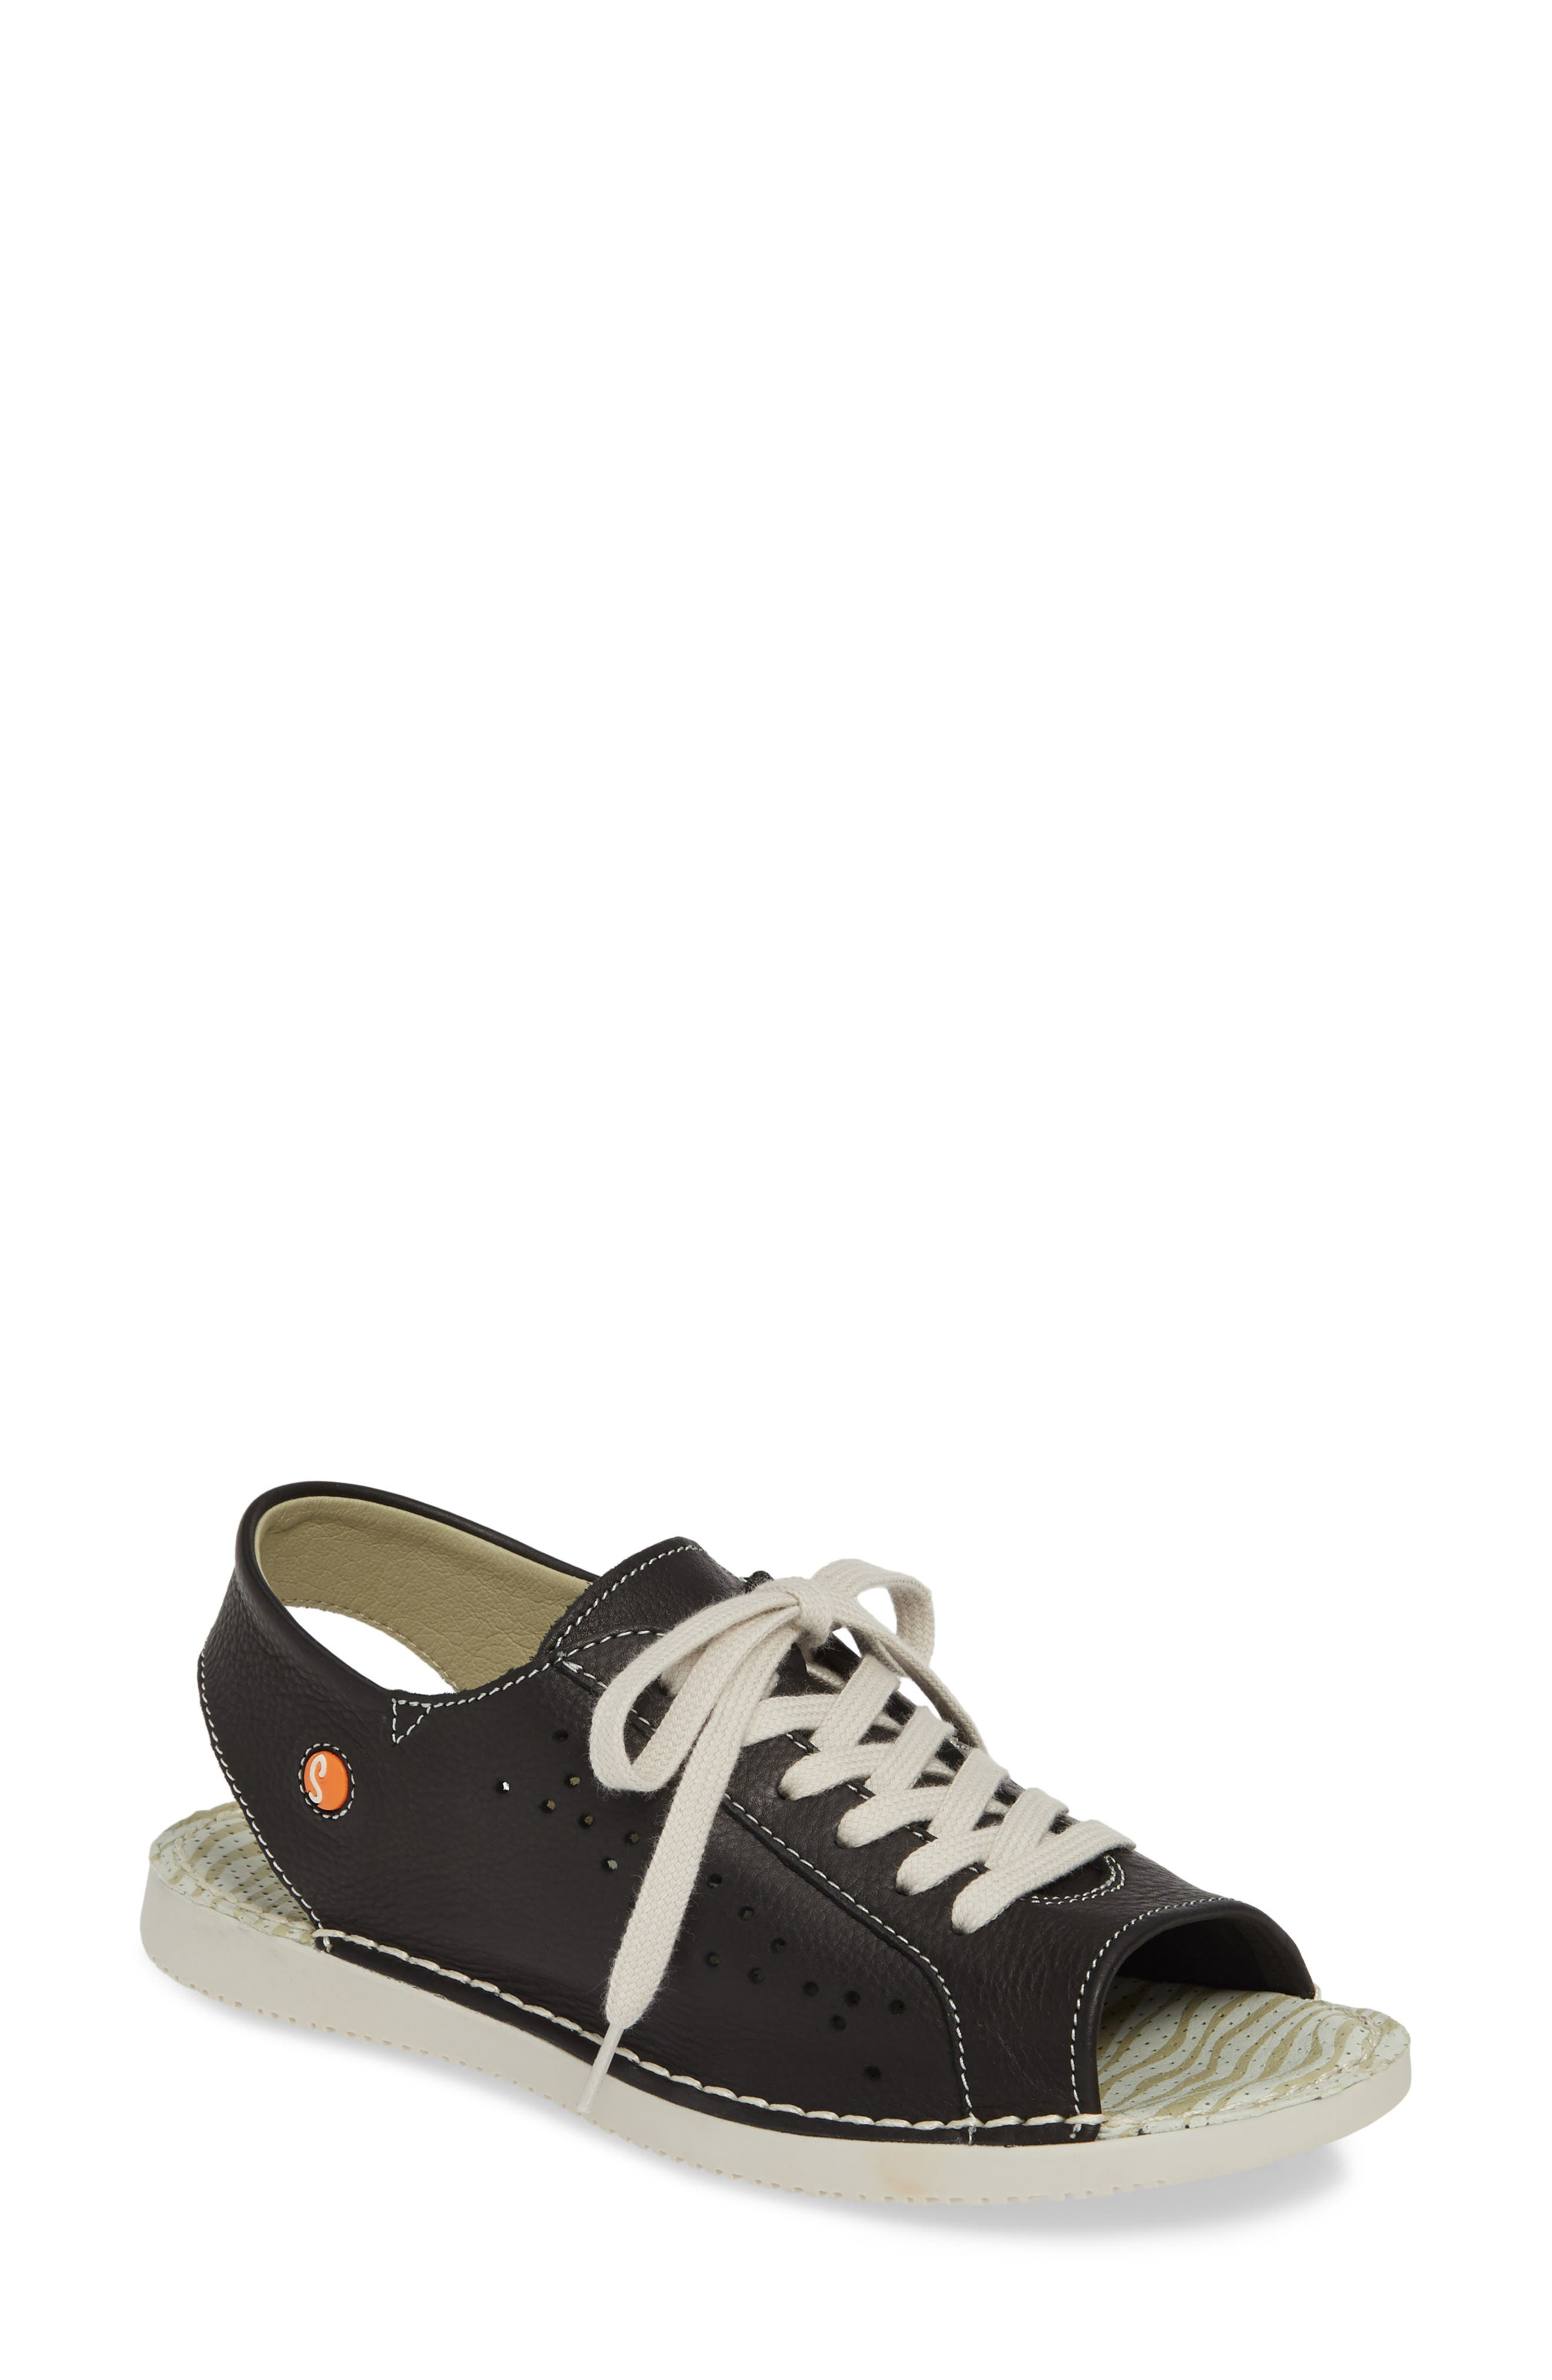 SOFTINOS BY FLY LONDON Thi Slingback Sneaker Sandal, Main, color, BLACK LEATHER